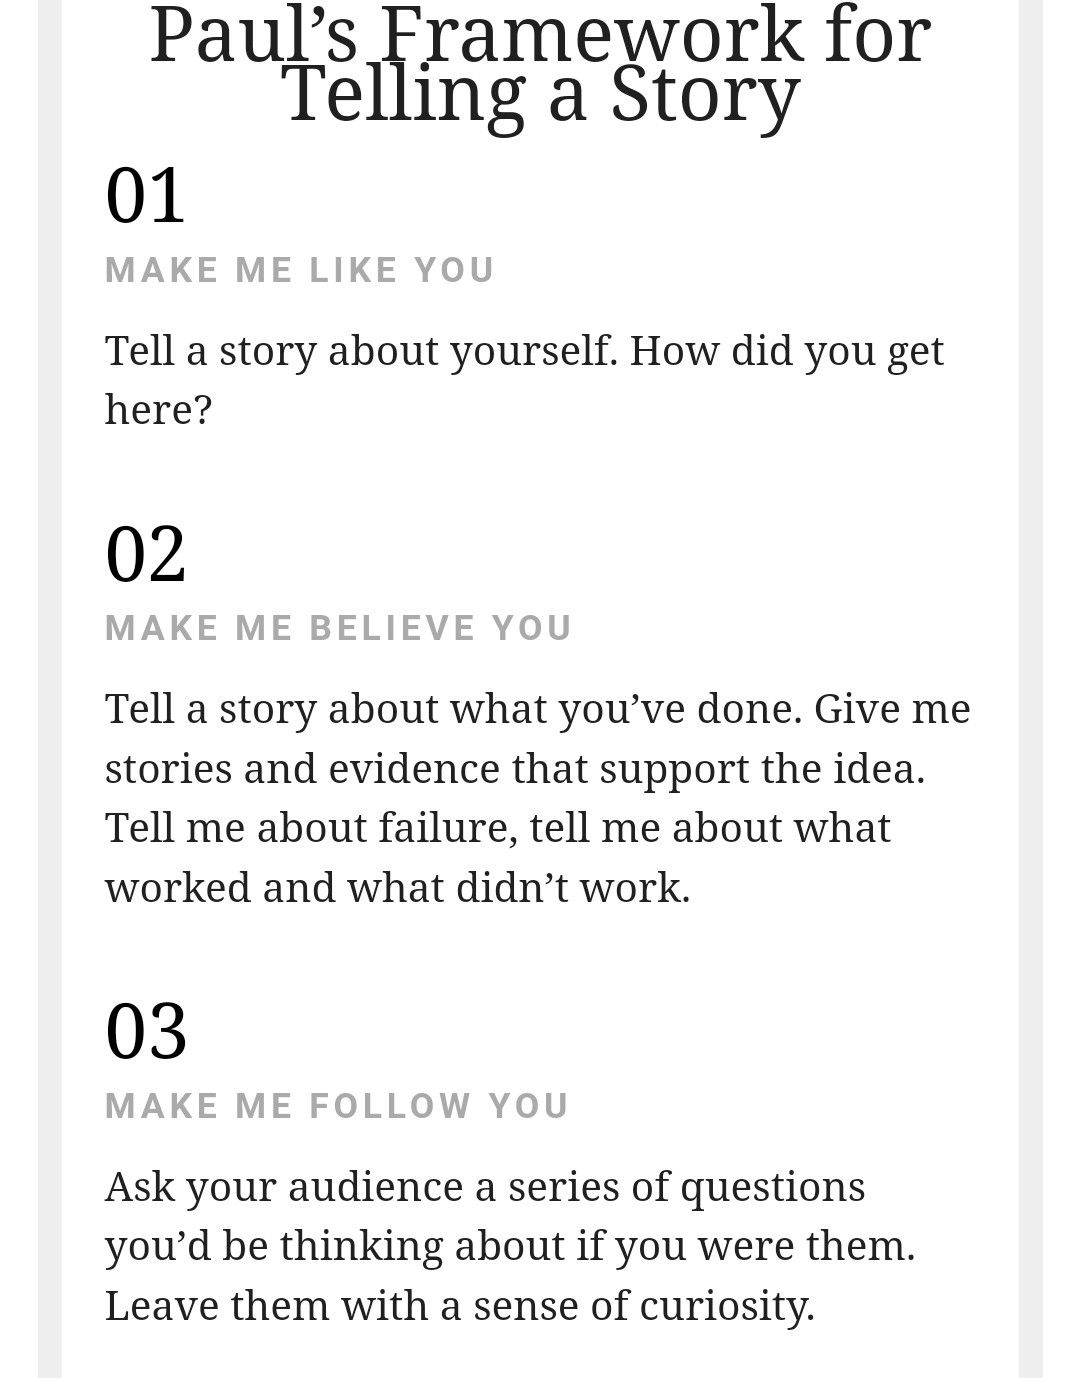 Storytelling 3 Big Steps To Prepare The Ground For An